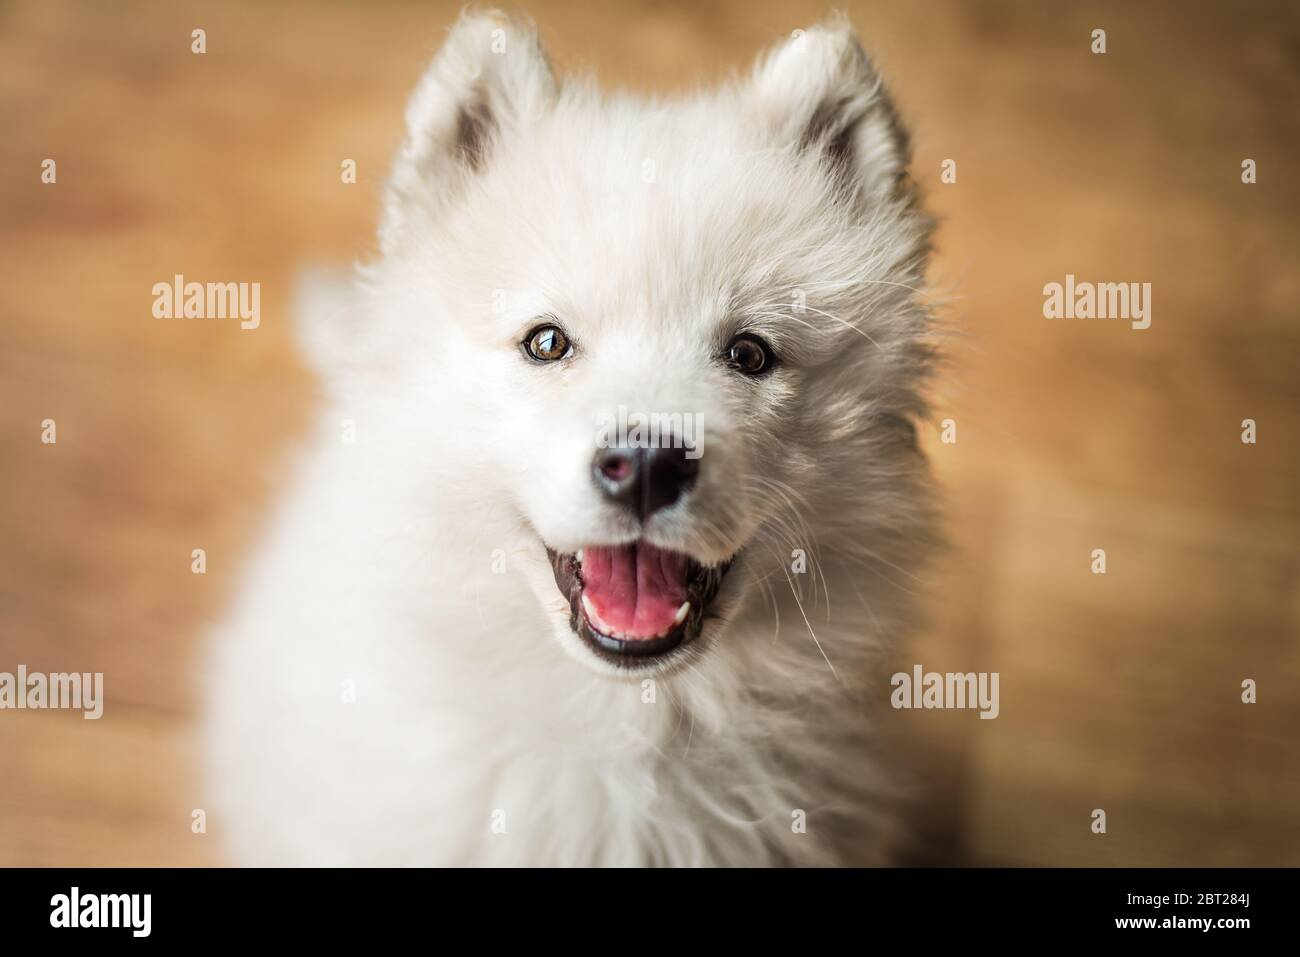 Cute Young Playful Samoyed Puppy Indoors Looks Up At The Camera With A Happy Expression And A Smile Stock Photo Alamy